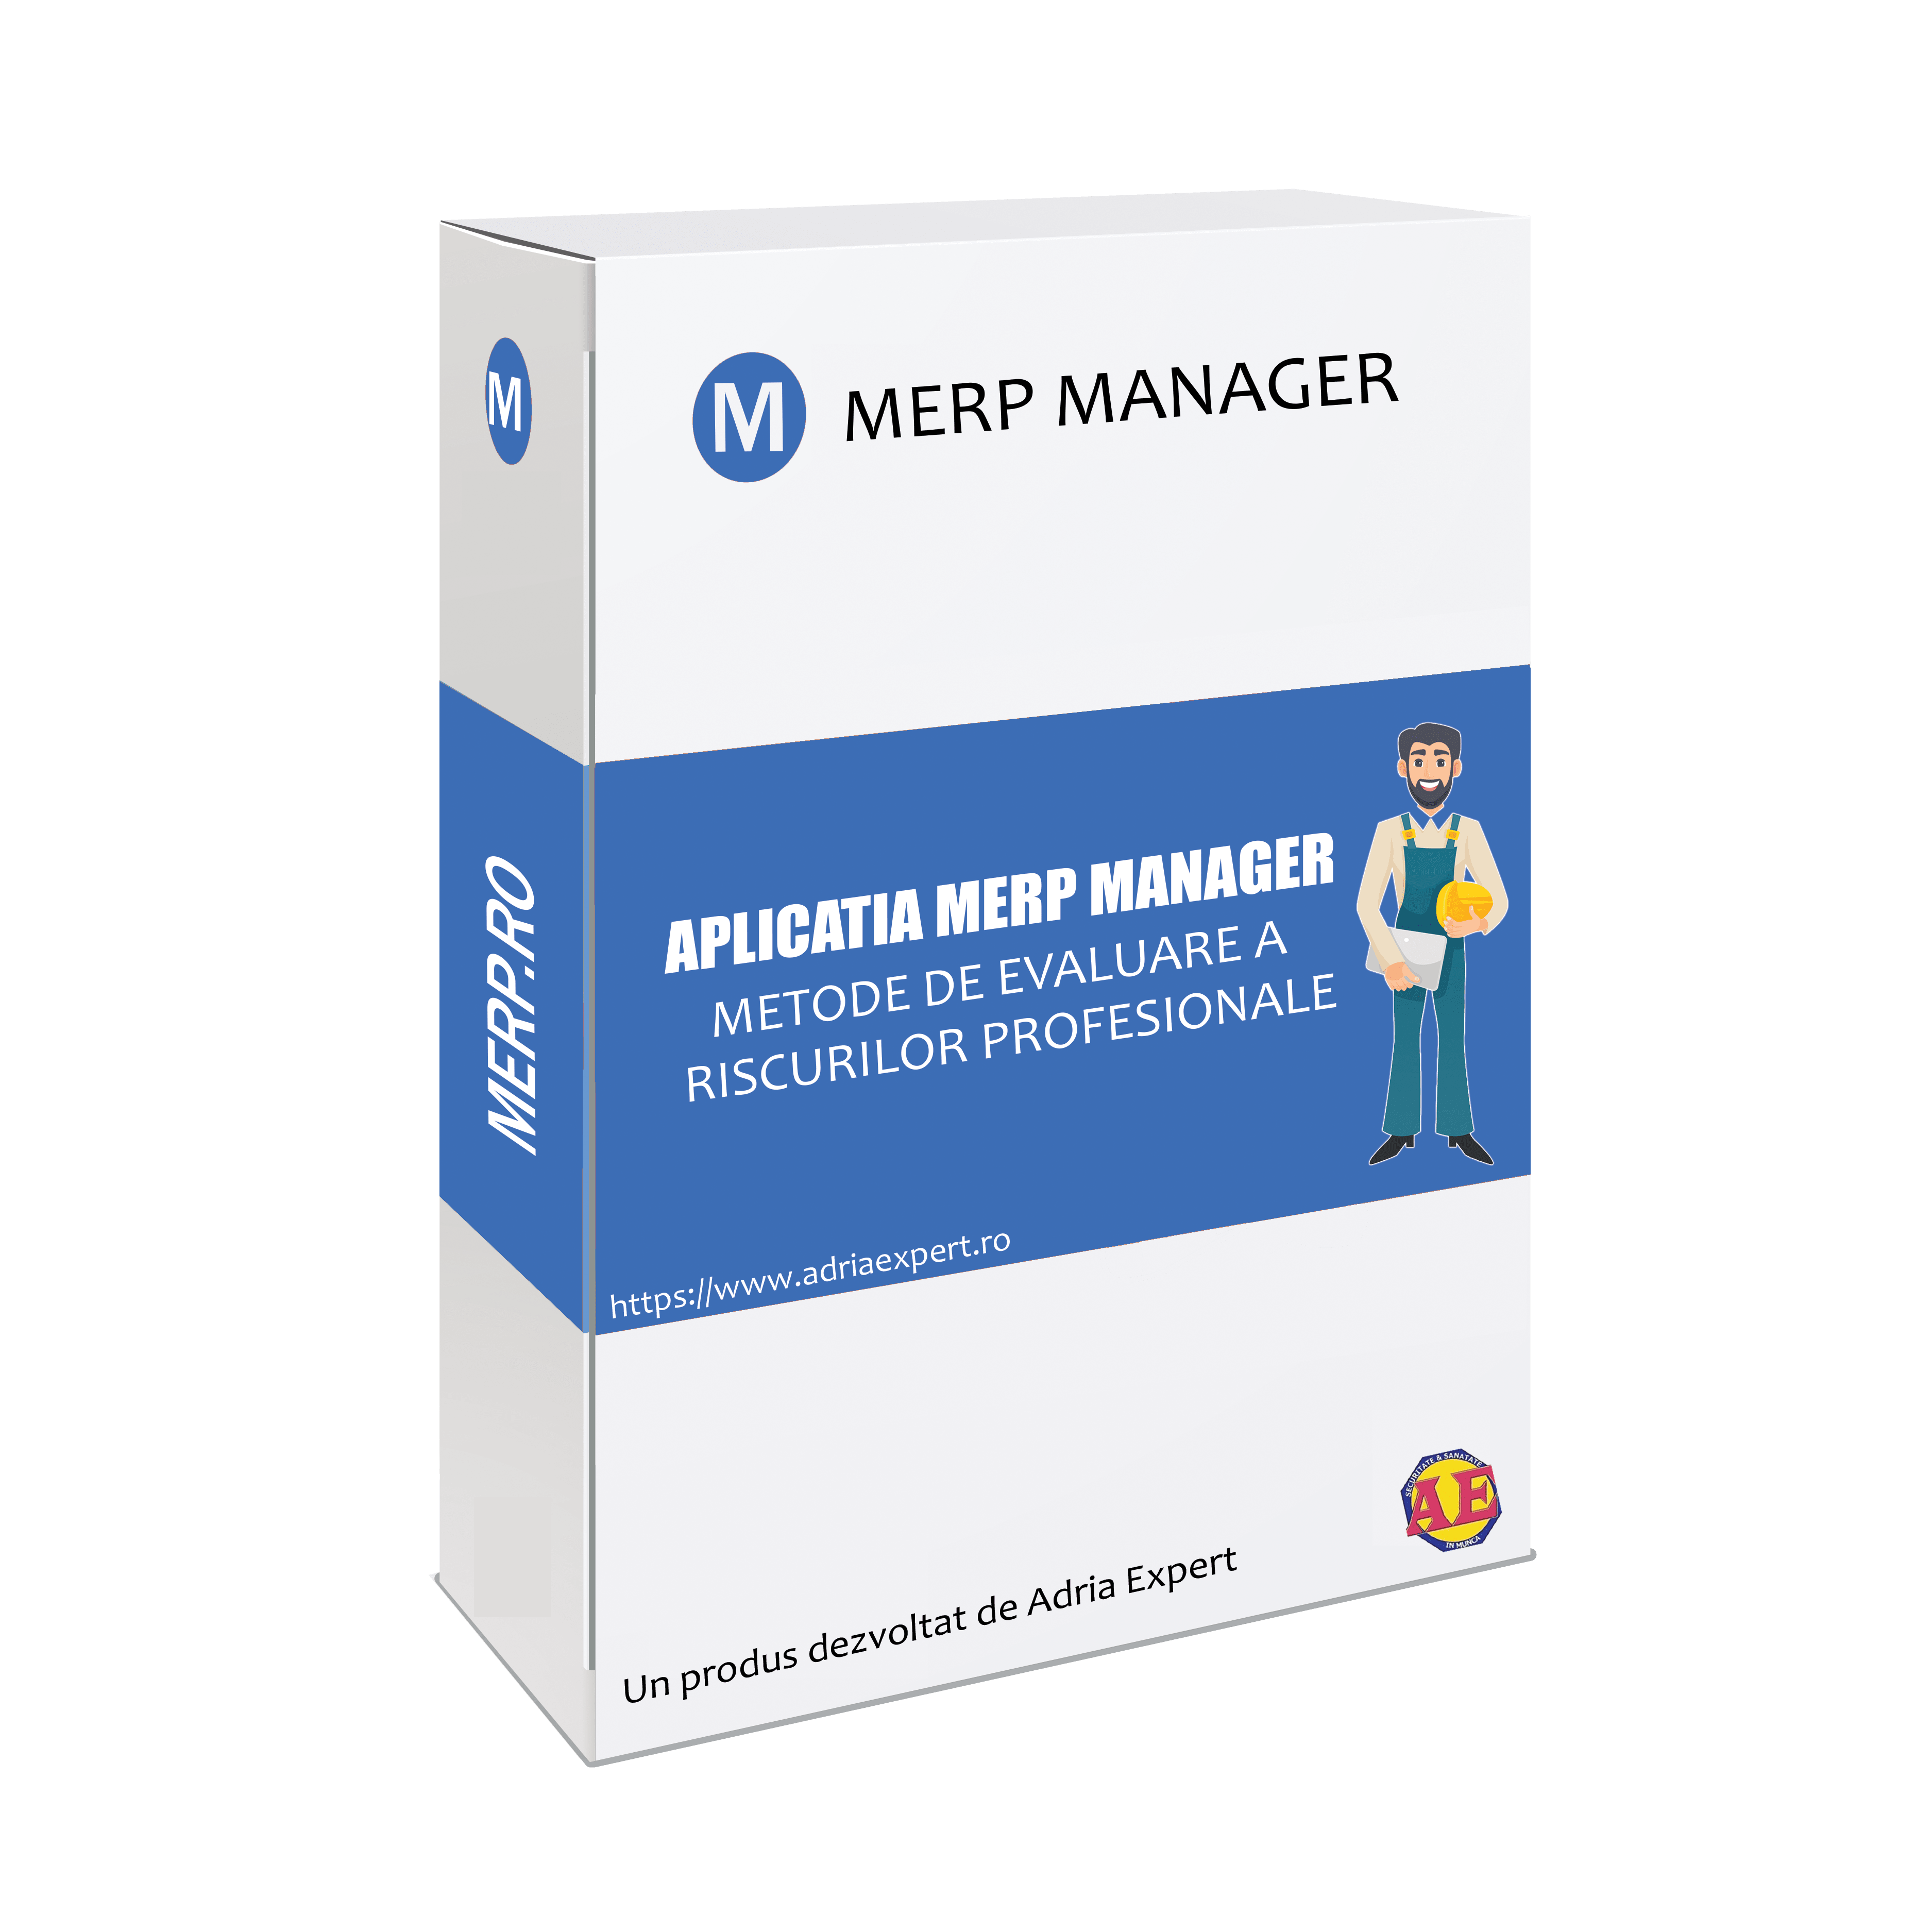 aplicatia ssm merp manager